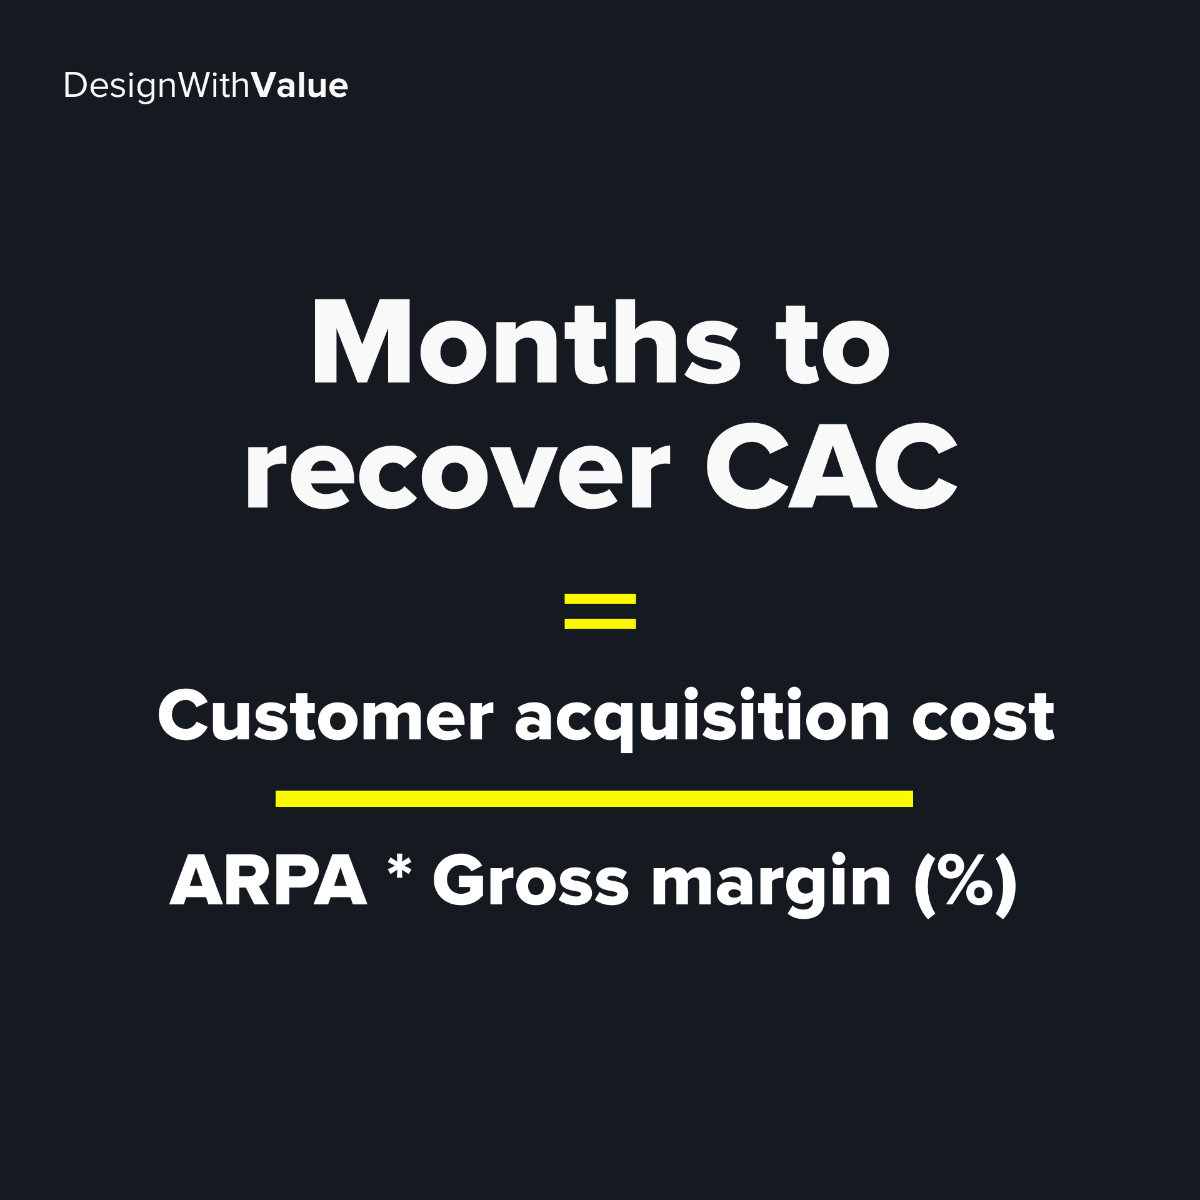 Months to recover CAC calculation